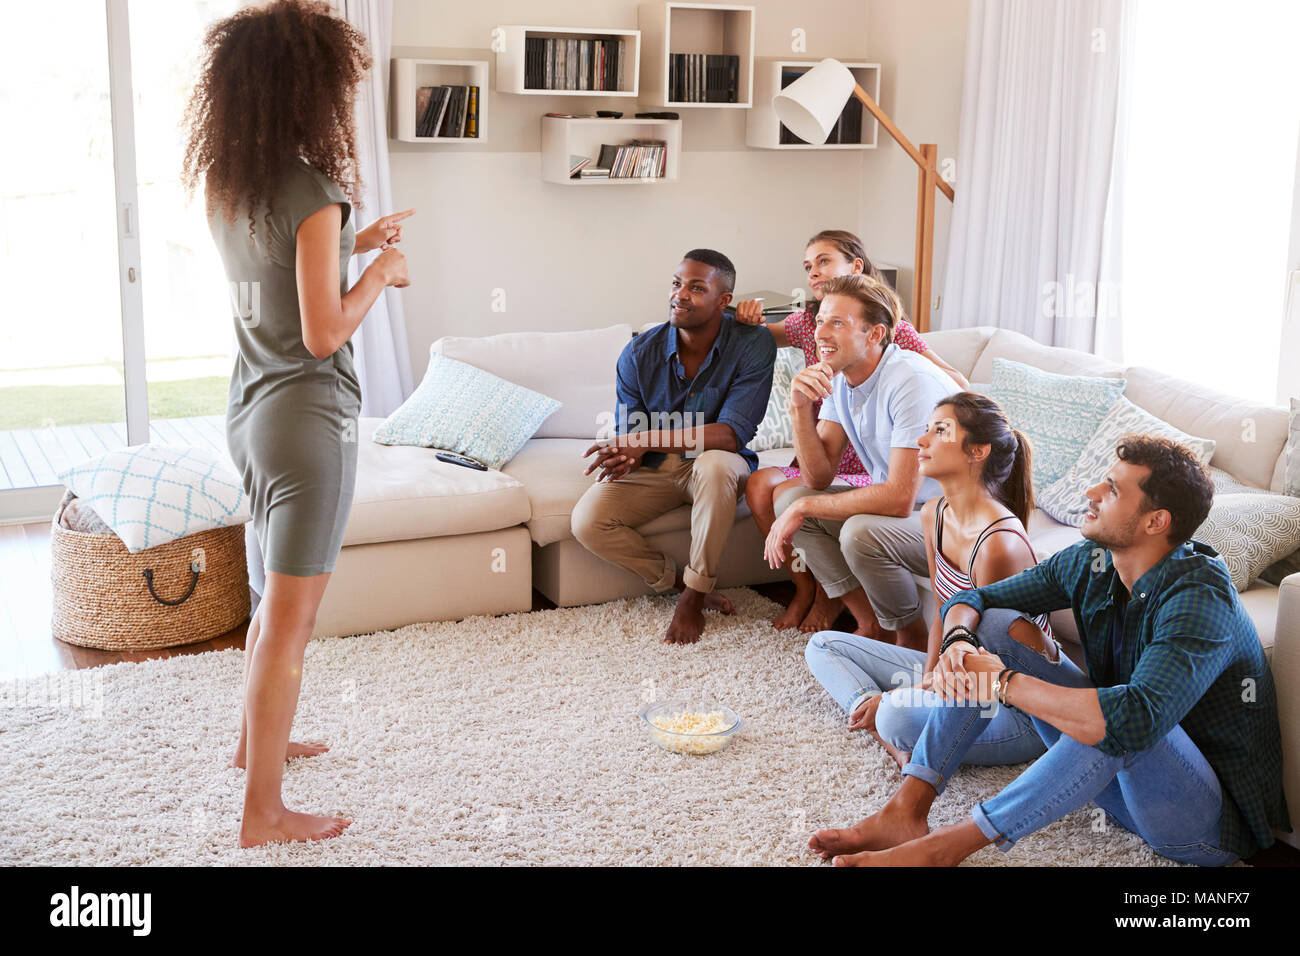 Group Of Friends At Home Having Fun Playing Charades Together - Stock Image